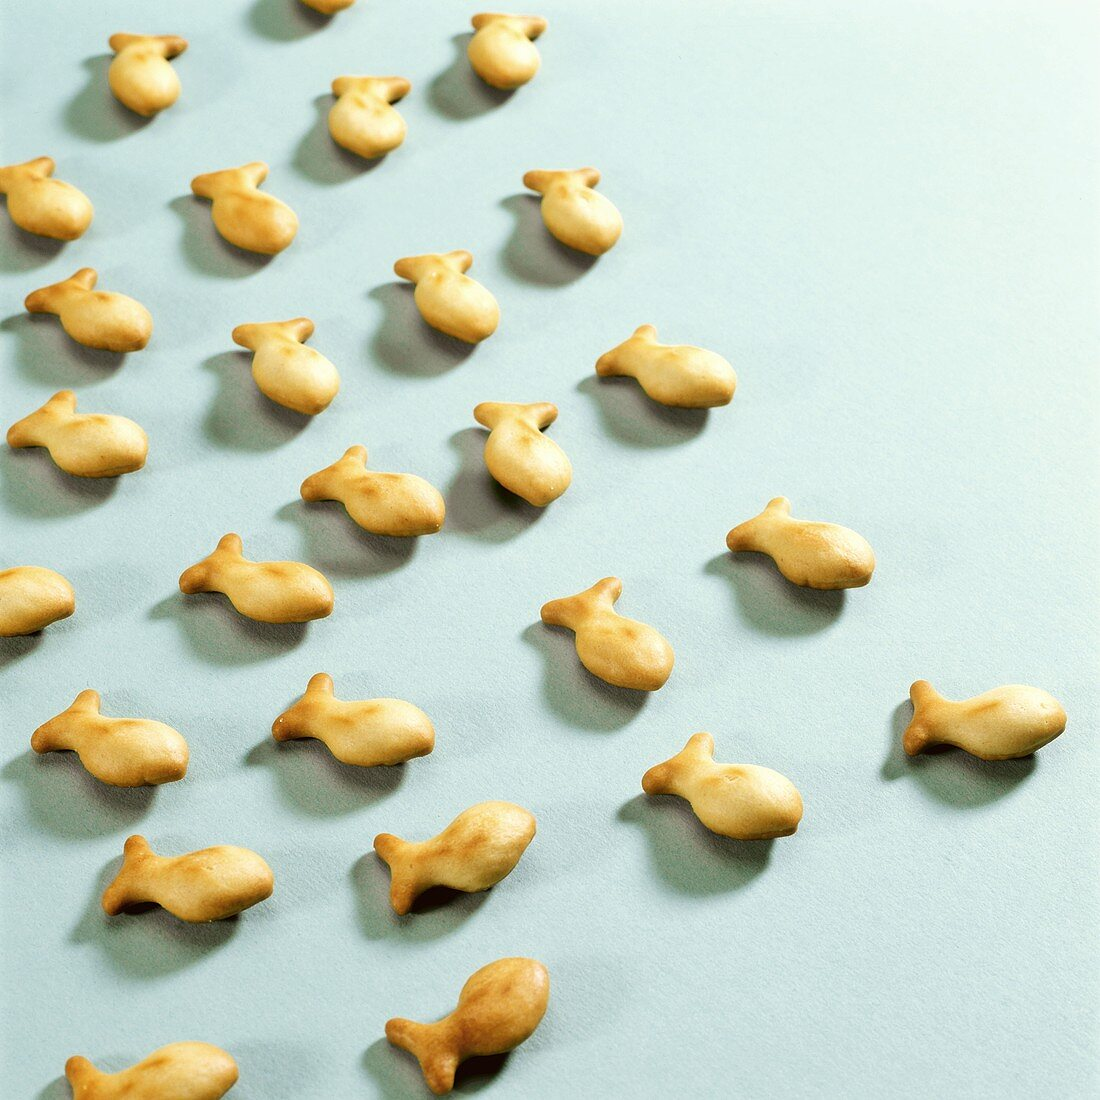 Nibbles; baked Fischlis on turquoise background